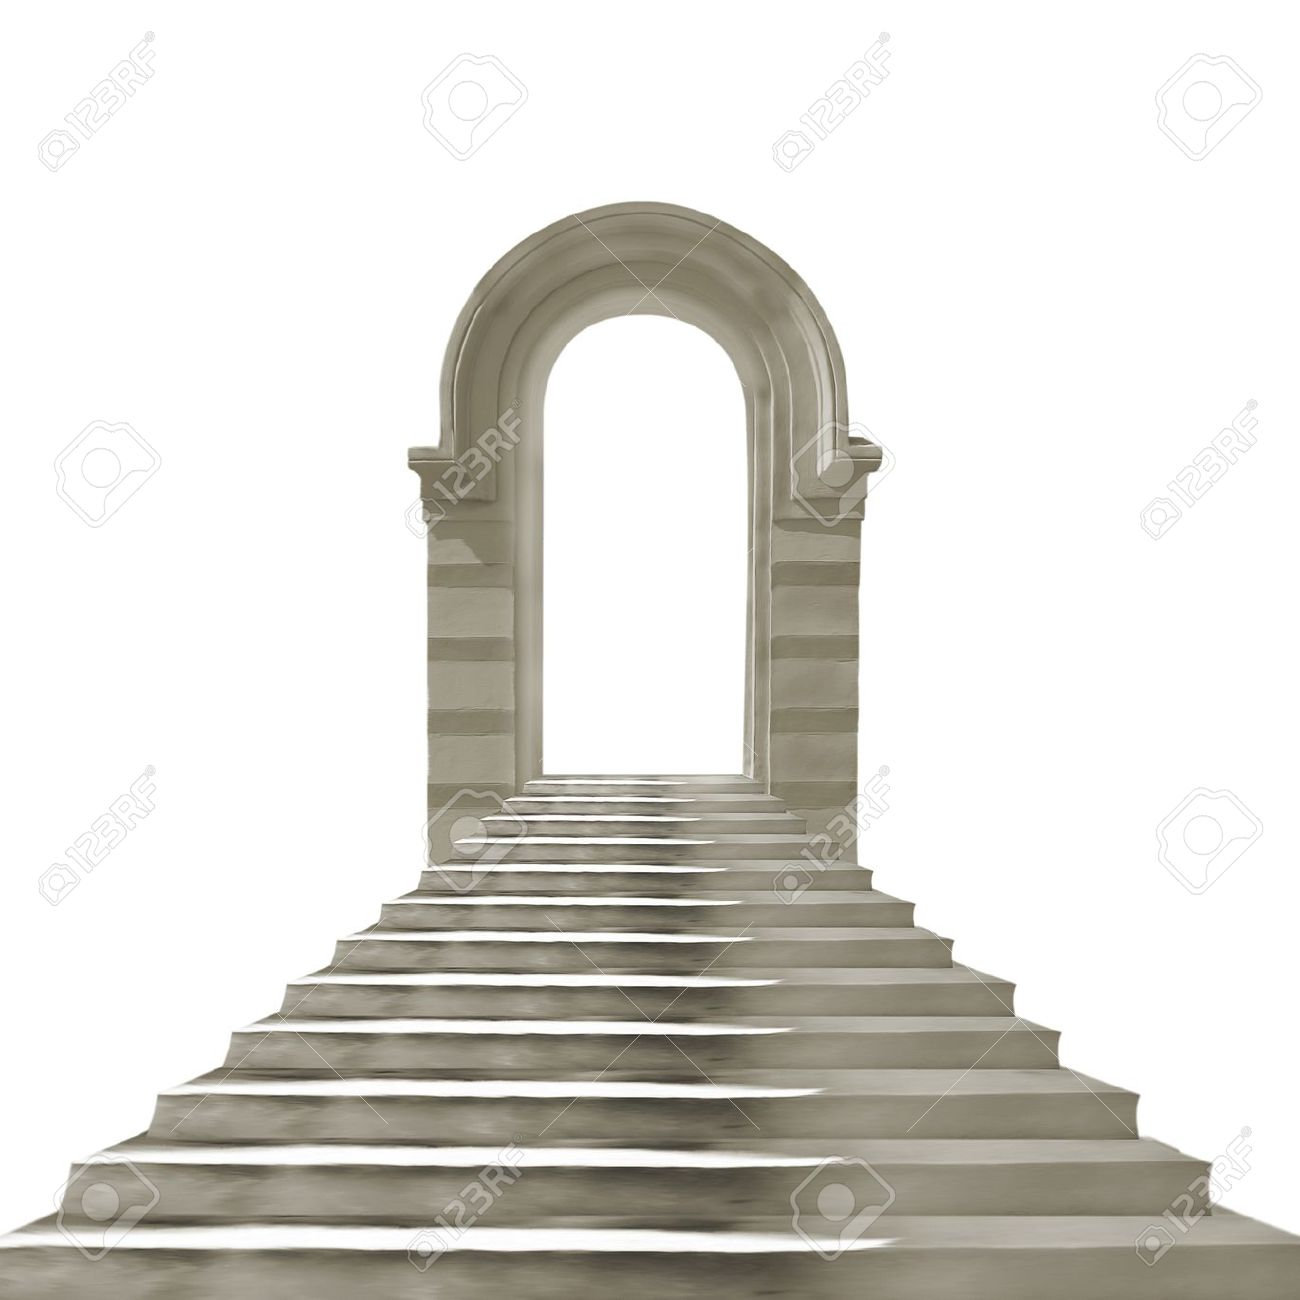 Stone Stairs Clipart Clipground